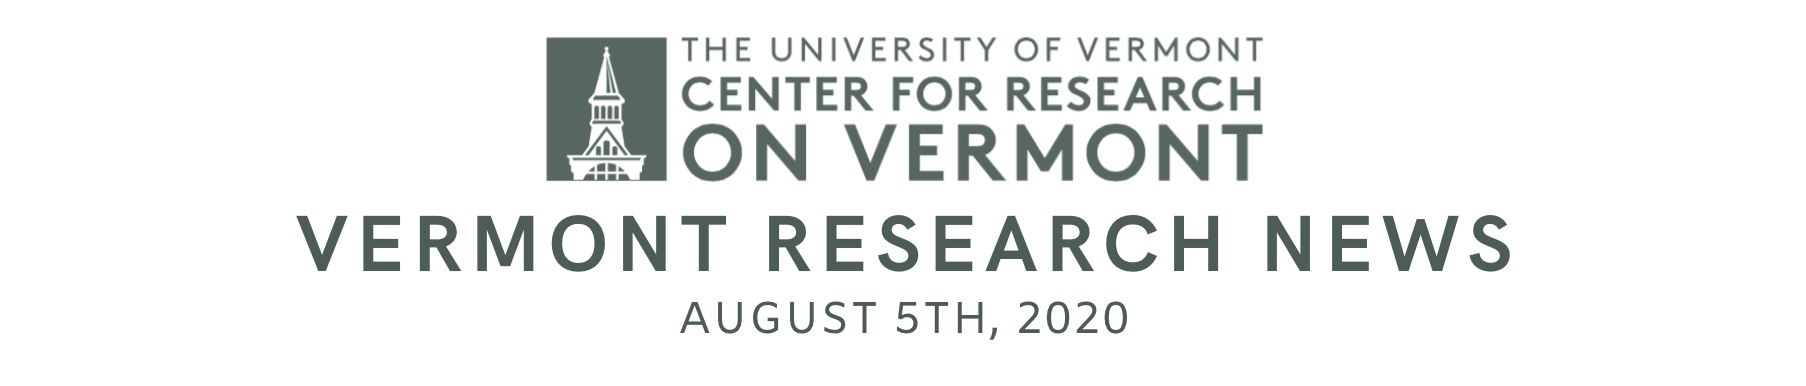 Vermont Research News: What can VT teach the nation about COVID-19?